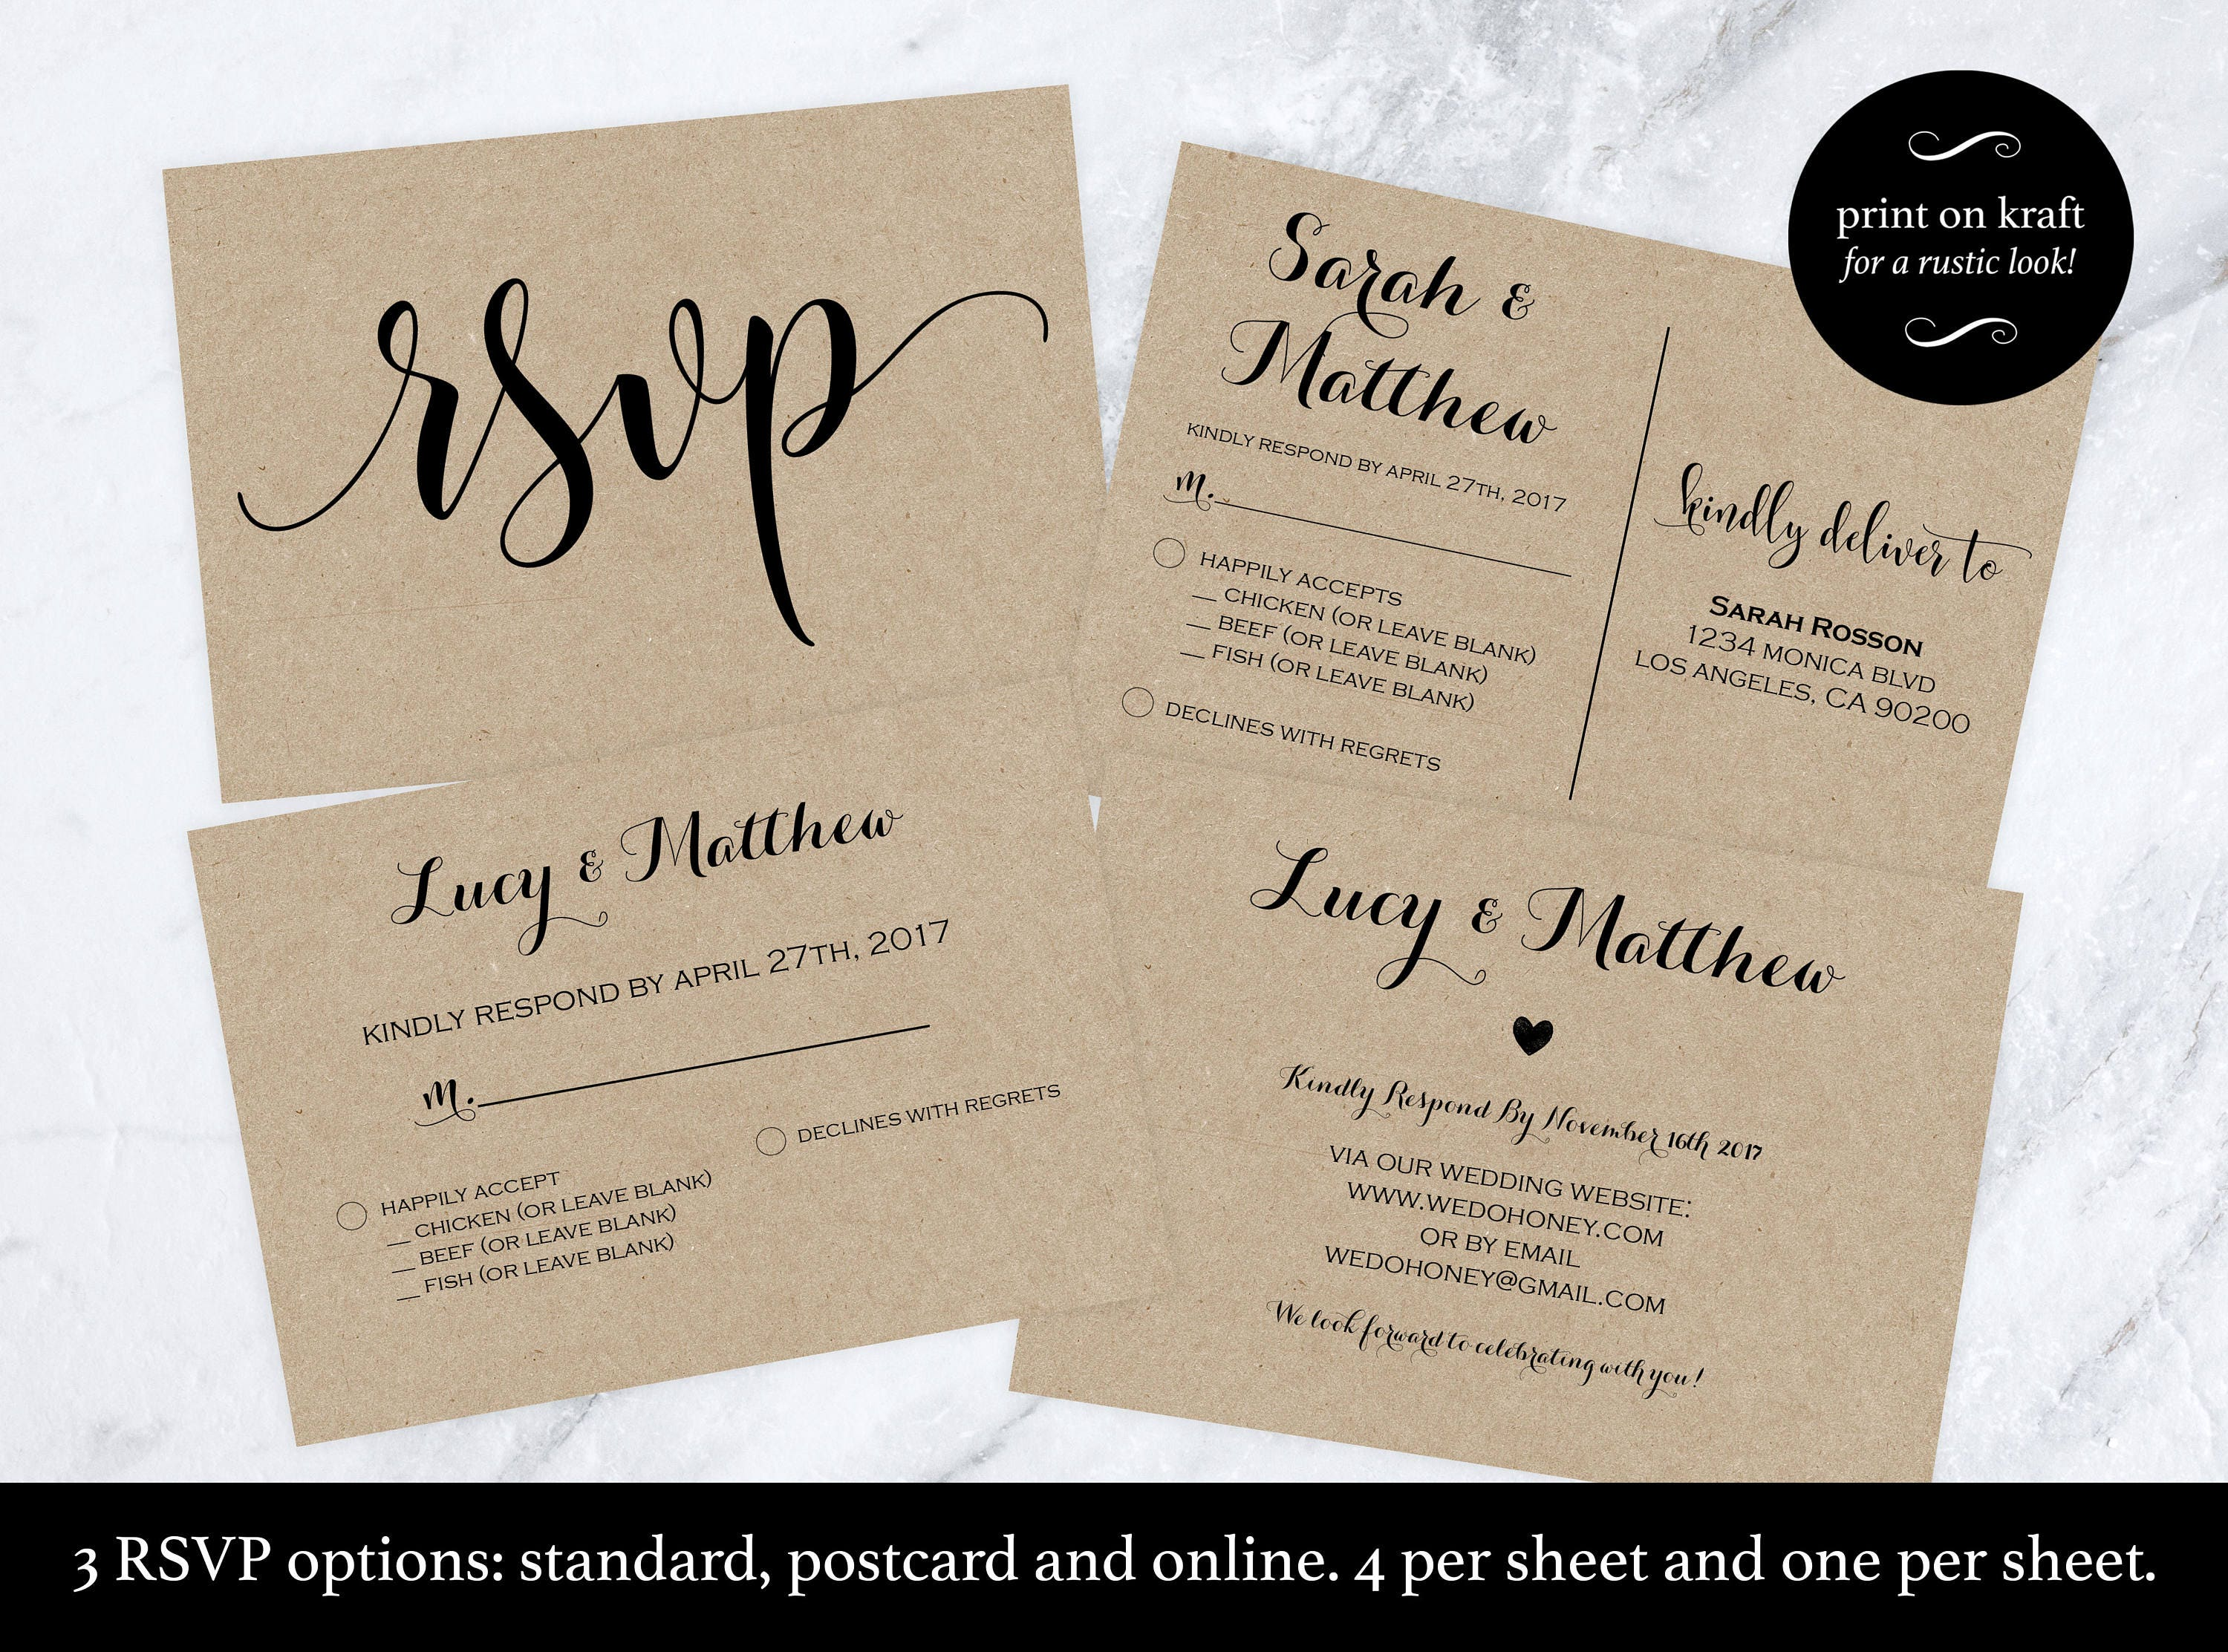 Online Wedding Invitations And Rsvp: Wedding Rsvp Postcard Rsvp Cards Rsvp Online Print On